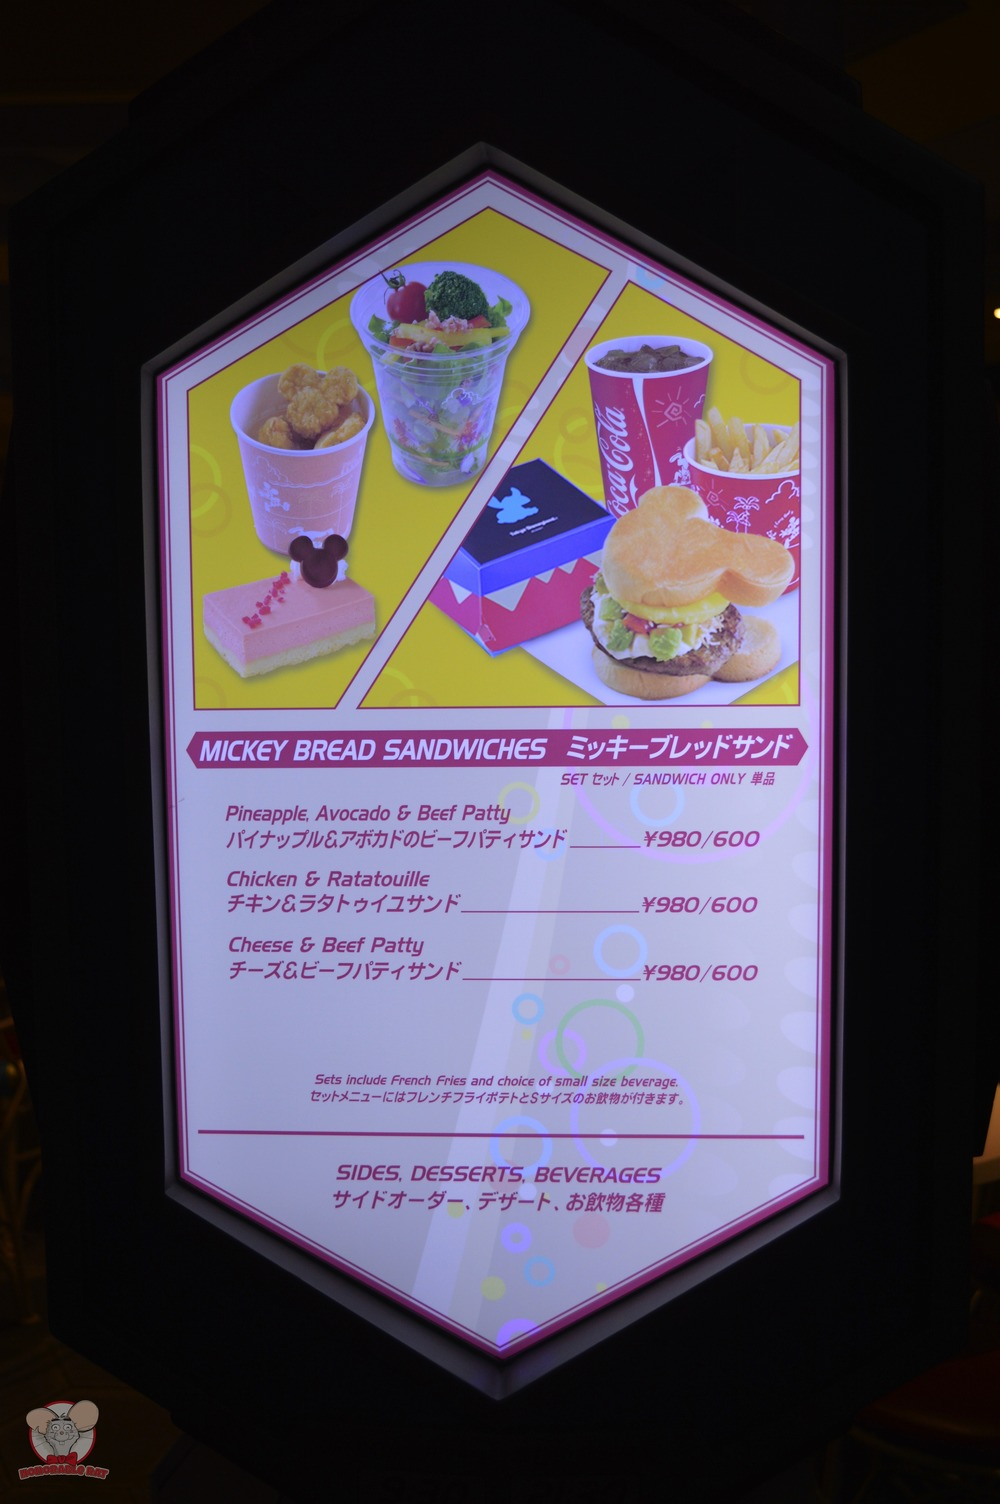 Mickey Bread Sandwiches Menu